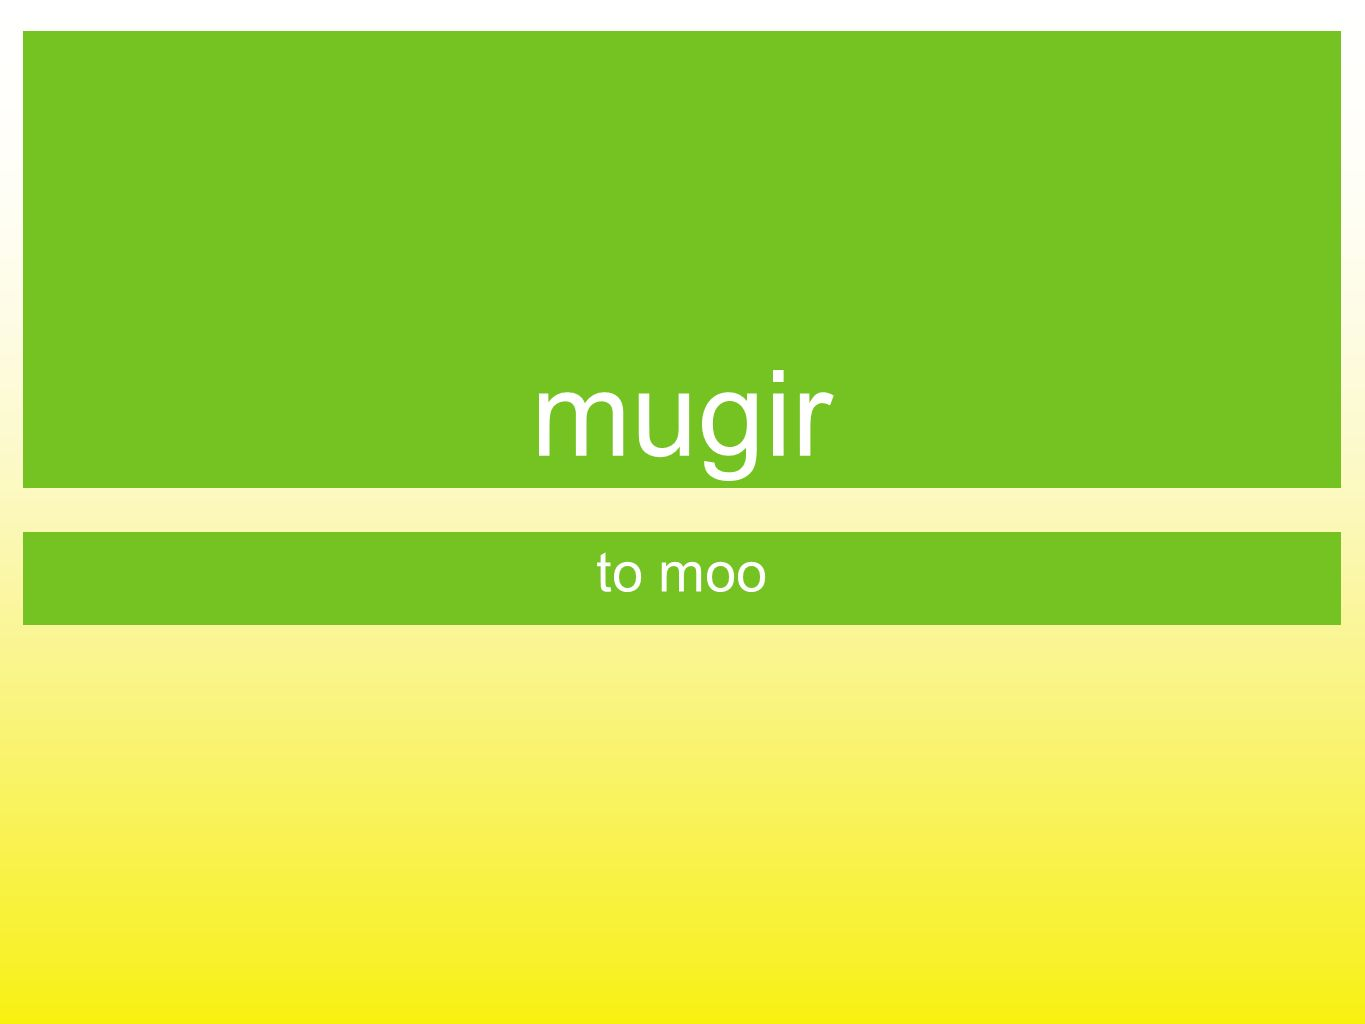 mugir to moo